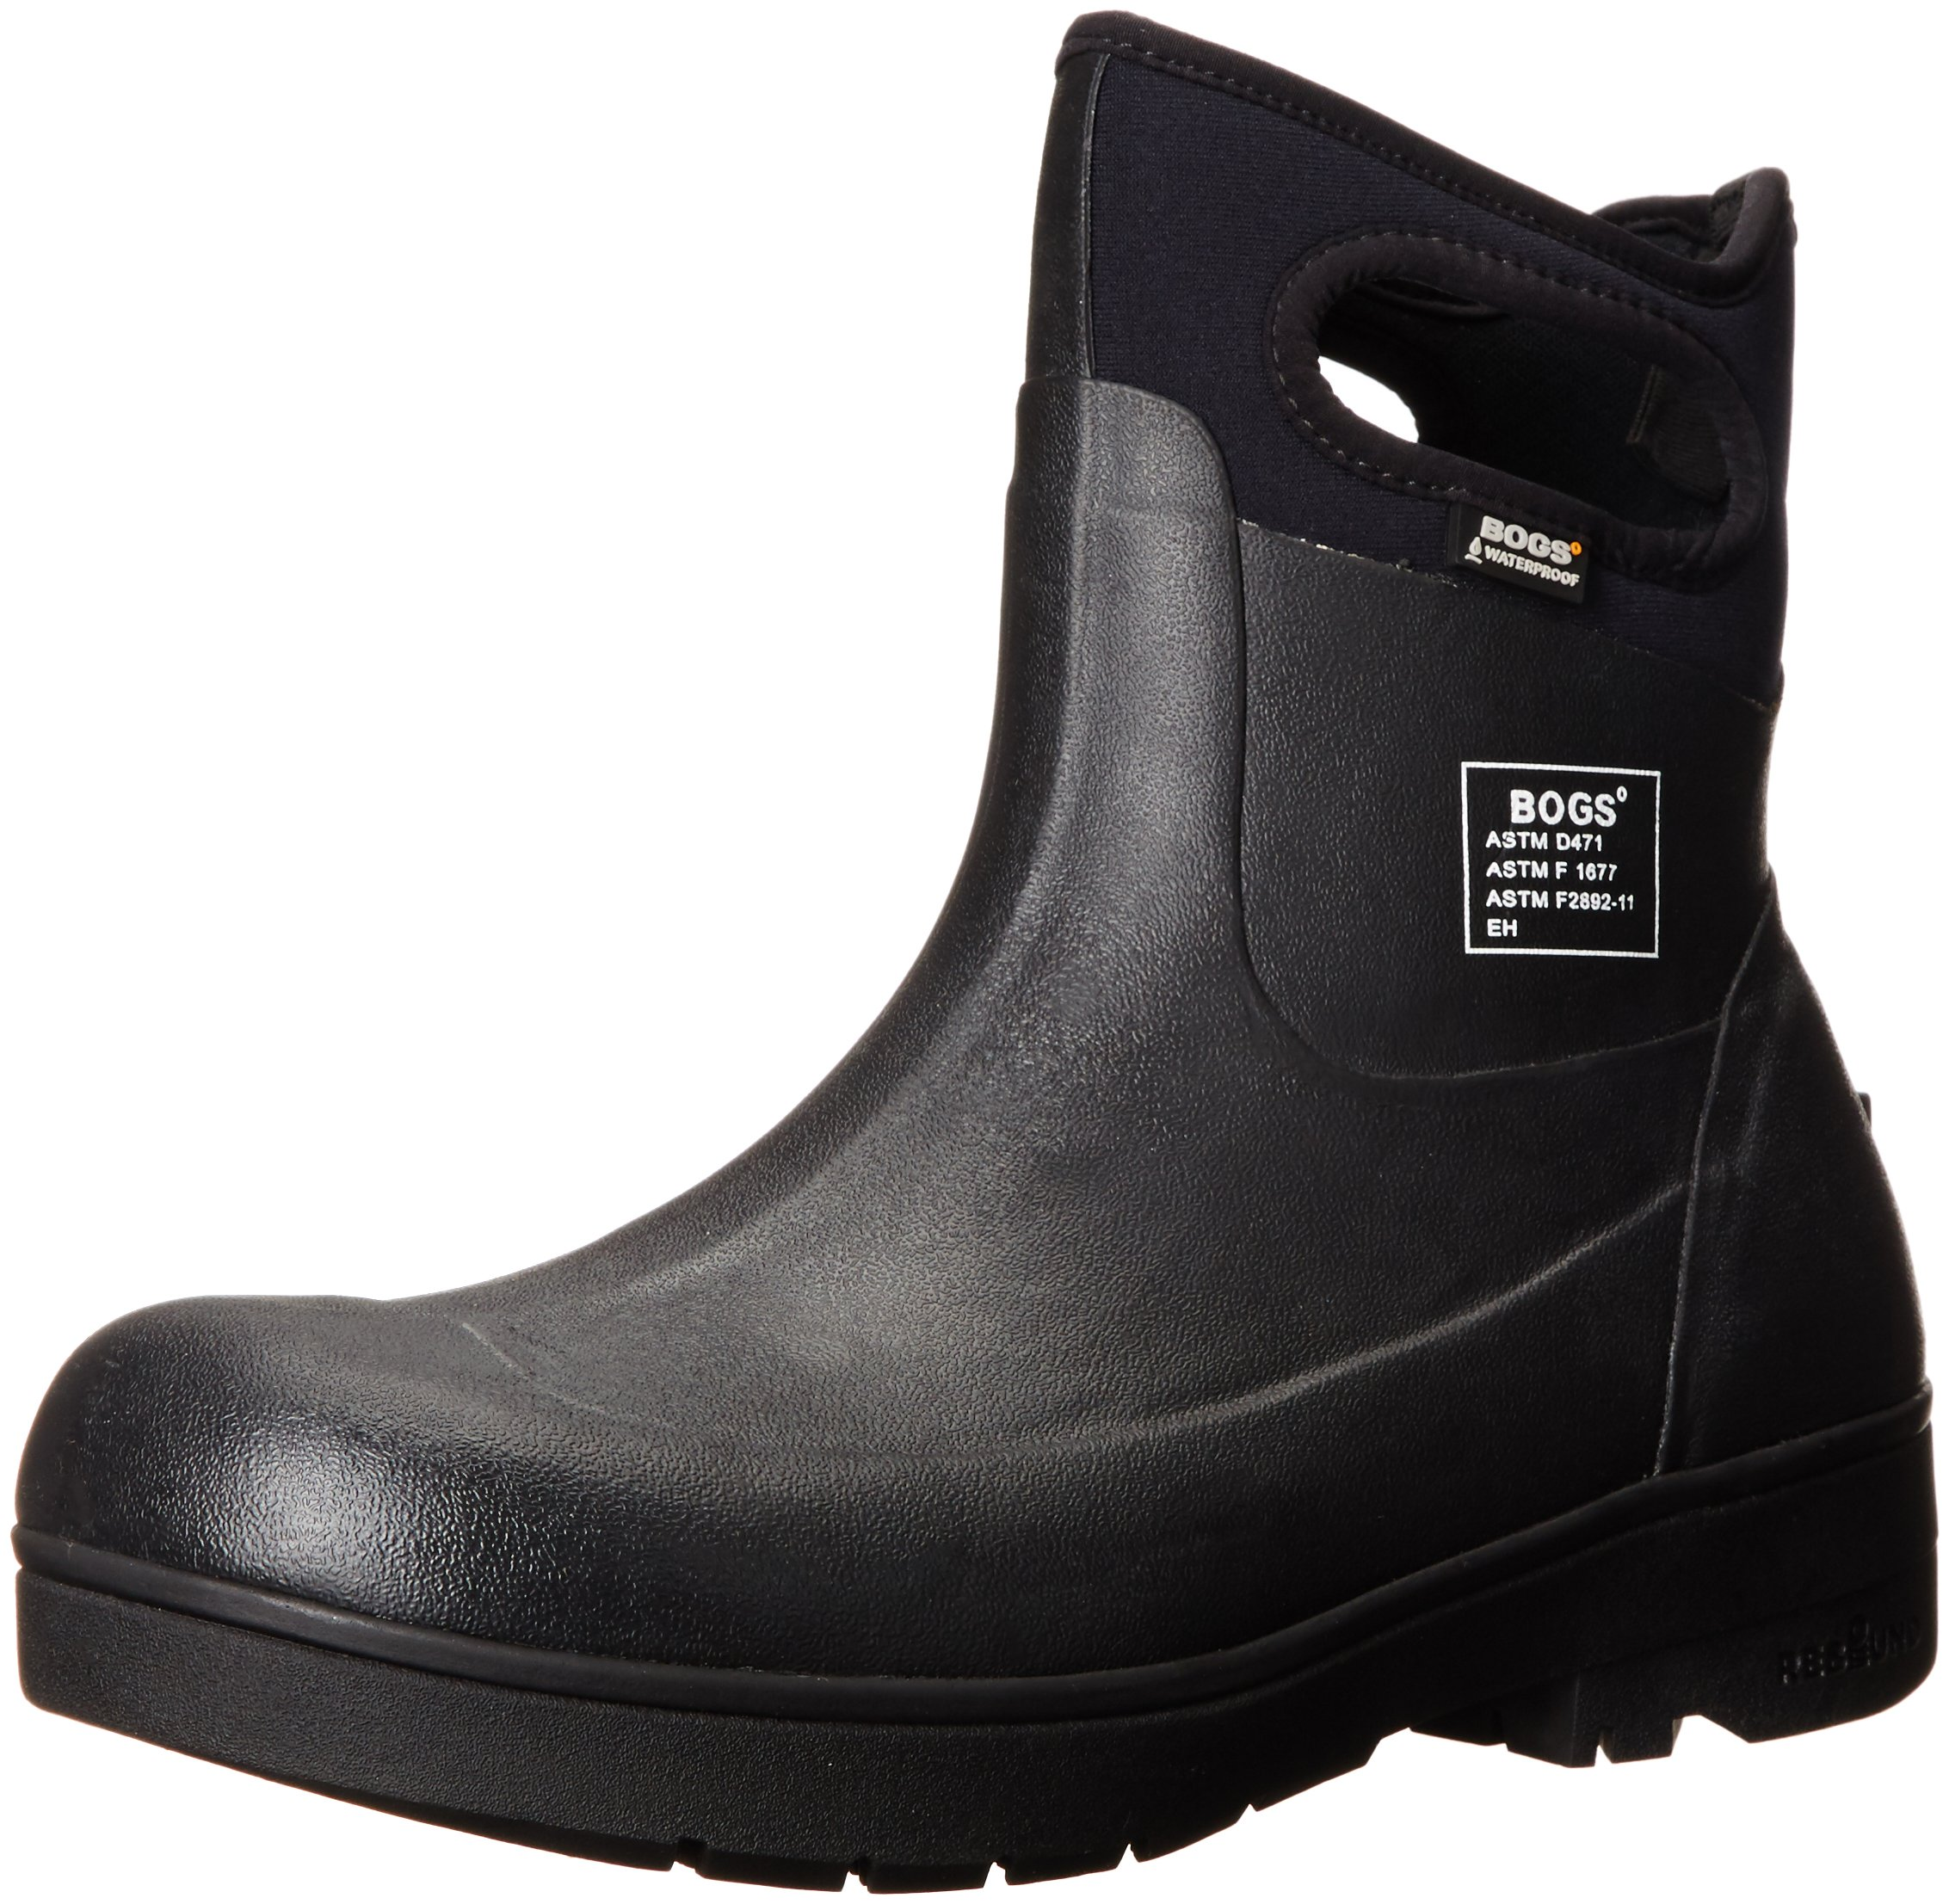 Bogs Men's Turf Stomper Insulated Work Boot, Black, 12 M US by Bogs (Image #1)